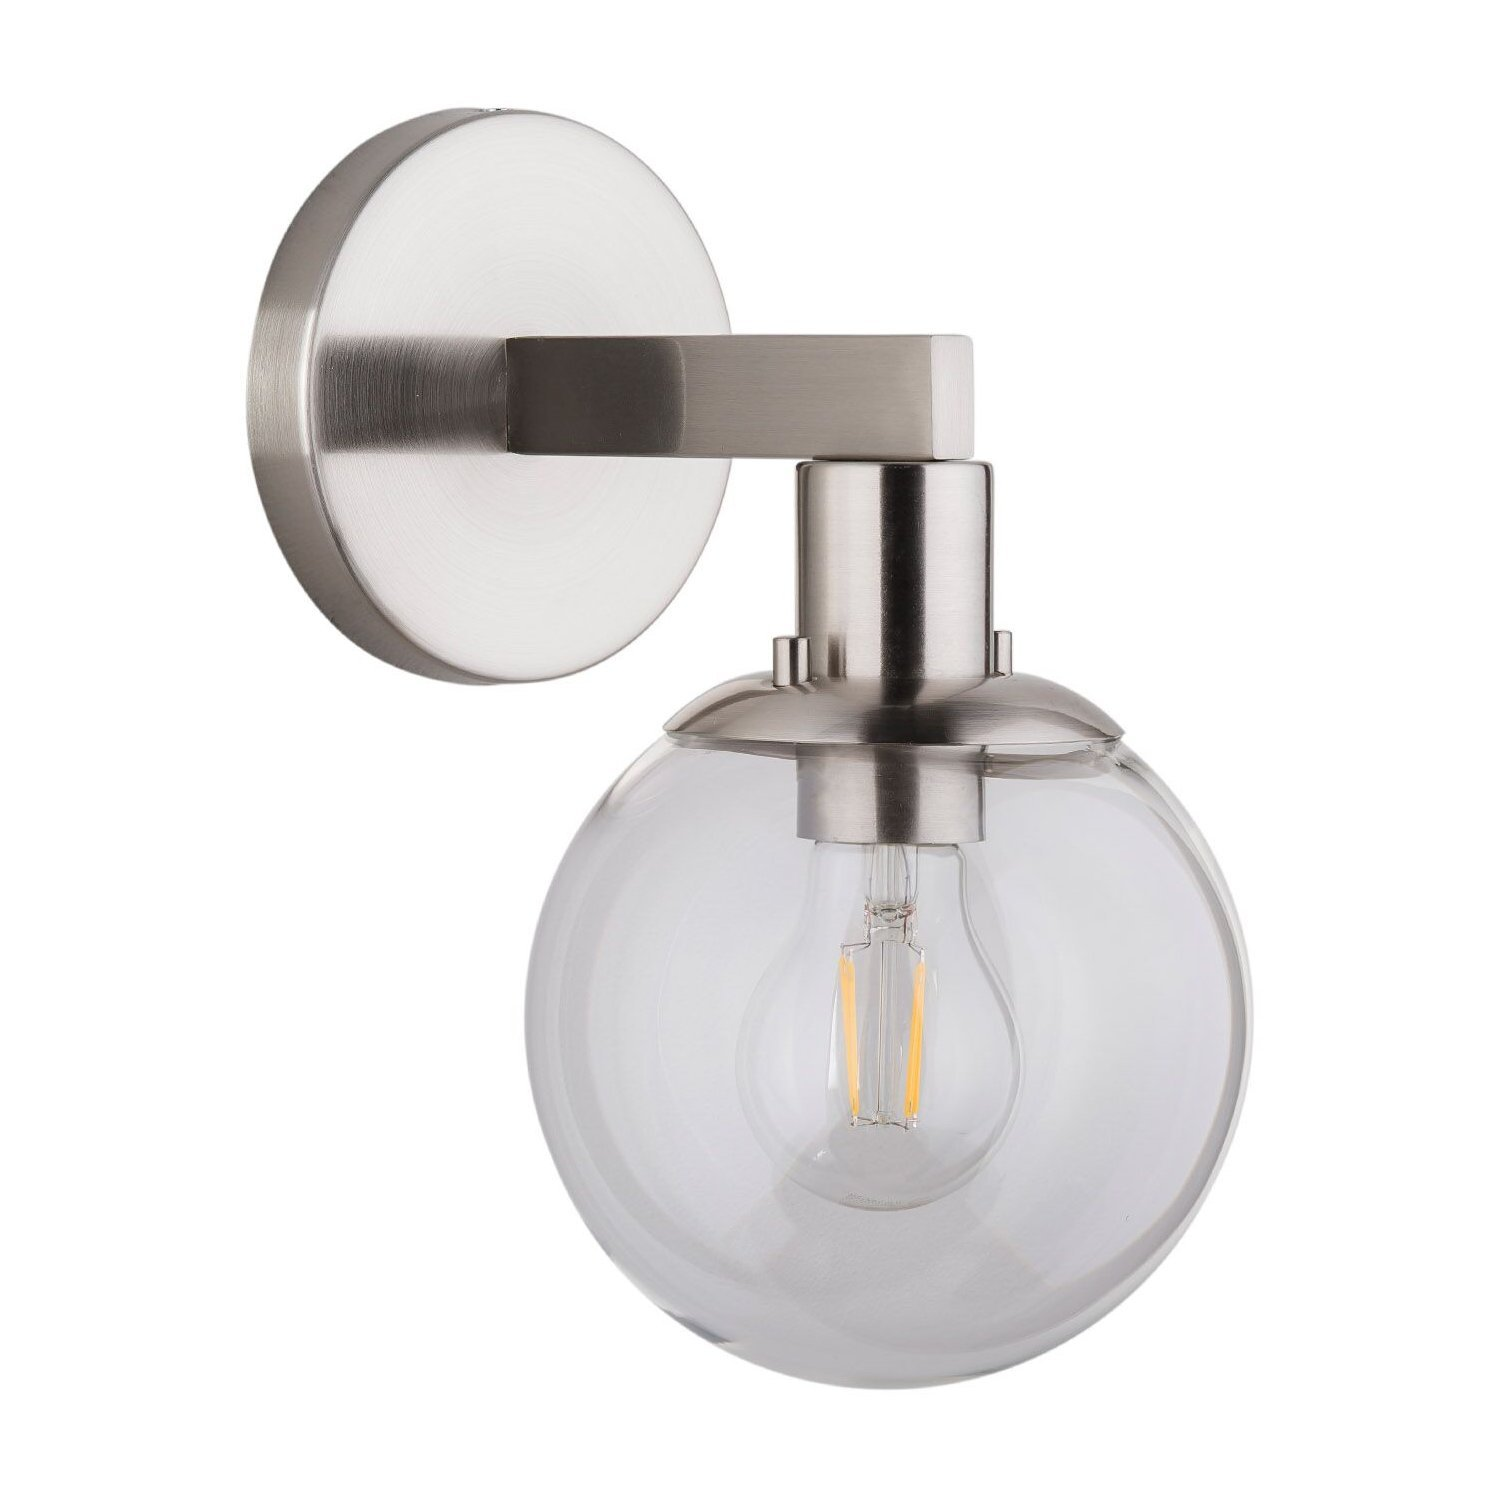 Sferra LED Industrial Wall Sconce – Brushed Nickel w/Clear Glass Globe – Linea di Liara LL-SC225-BN